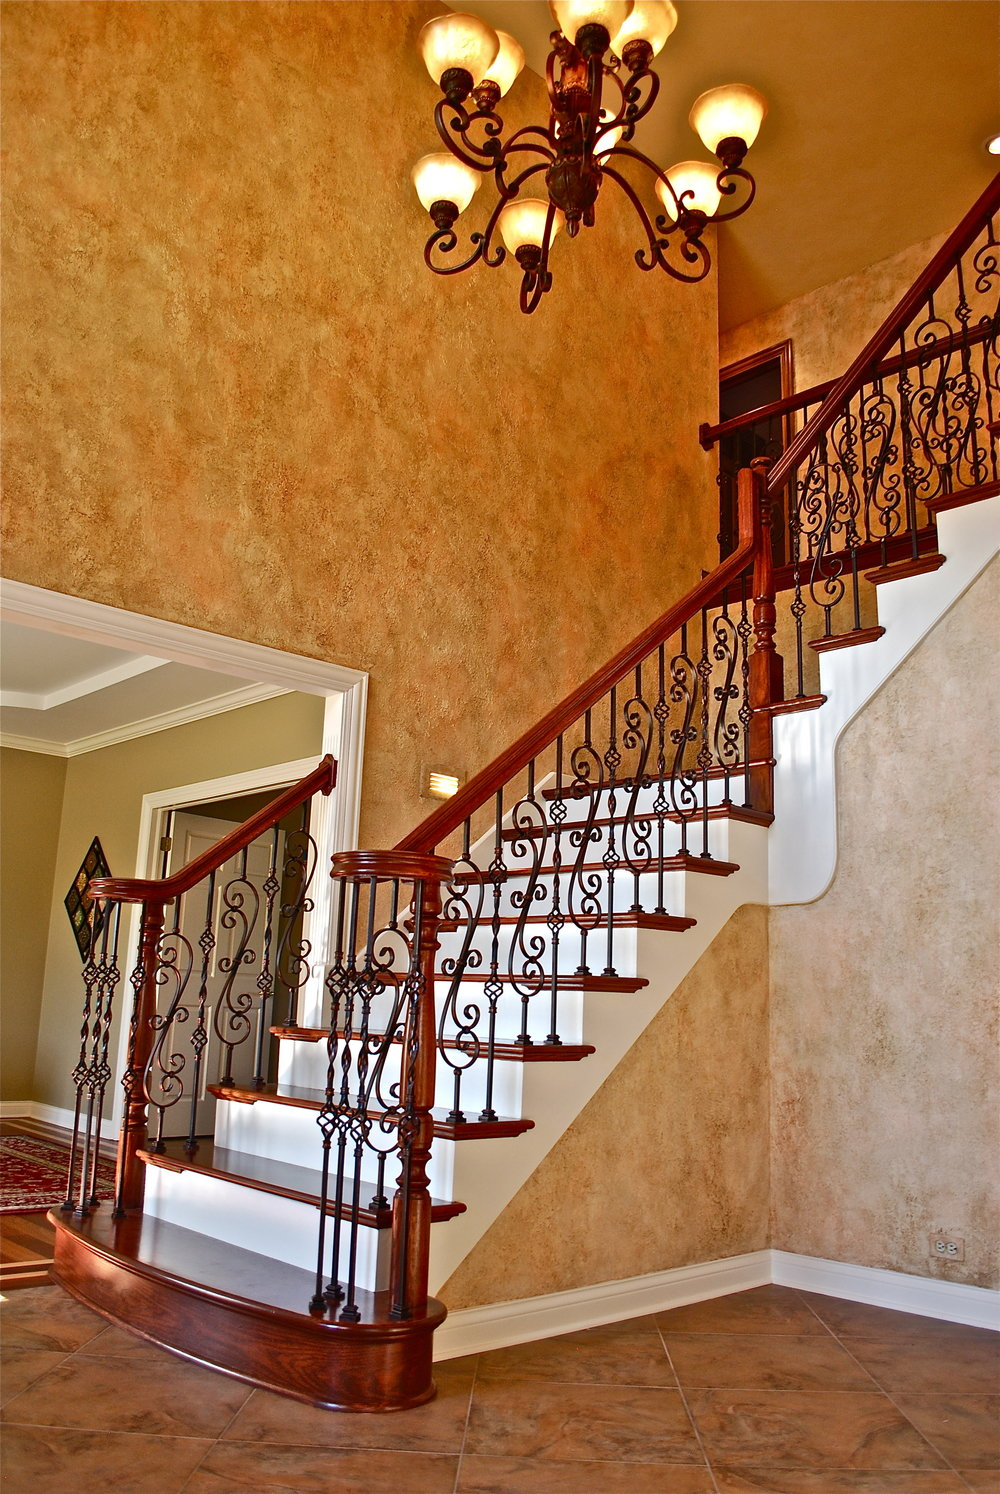 REPLACE STAIR CASE GENEVA IL 60134 IRON